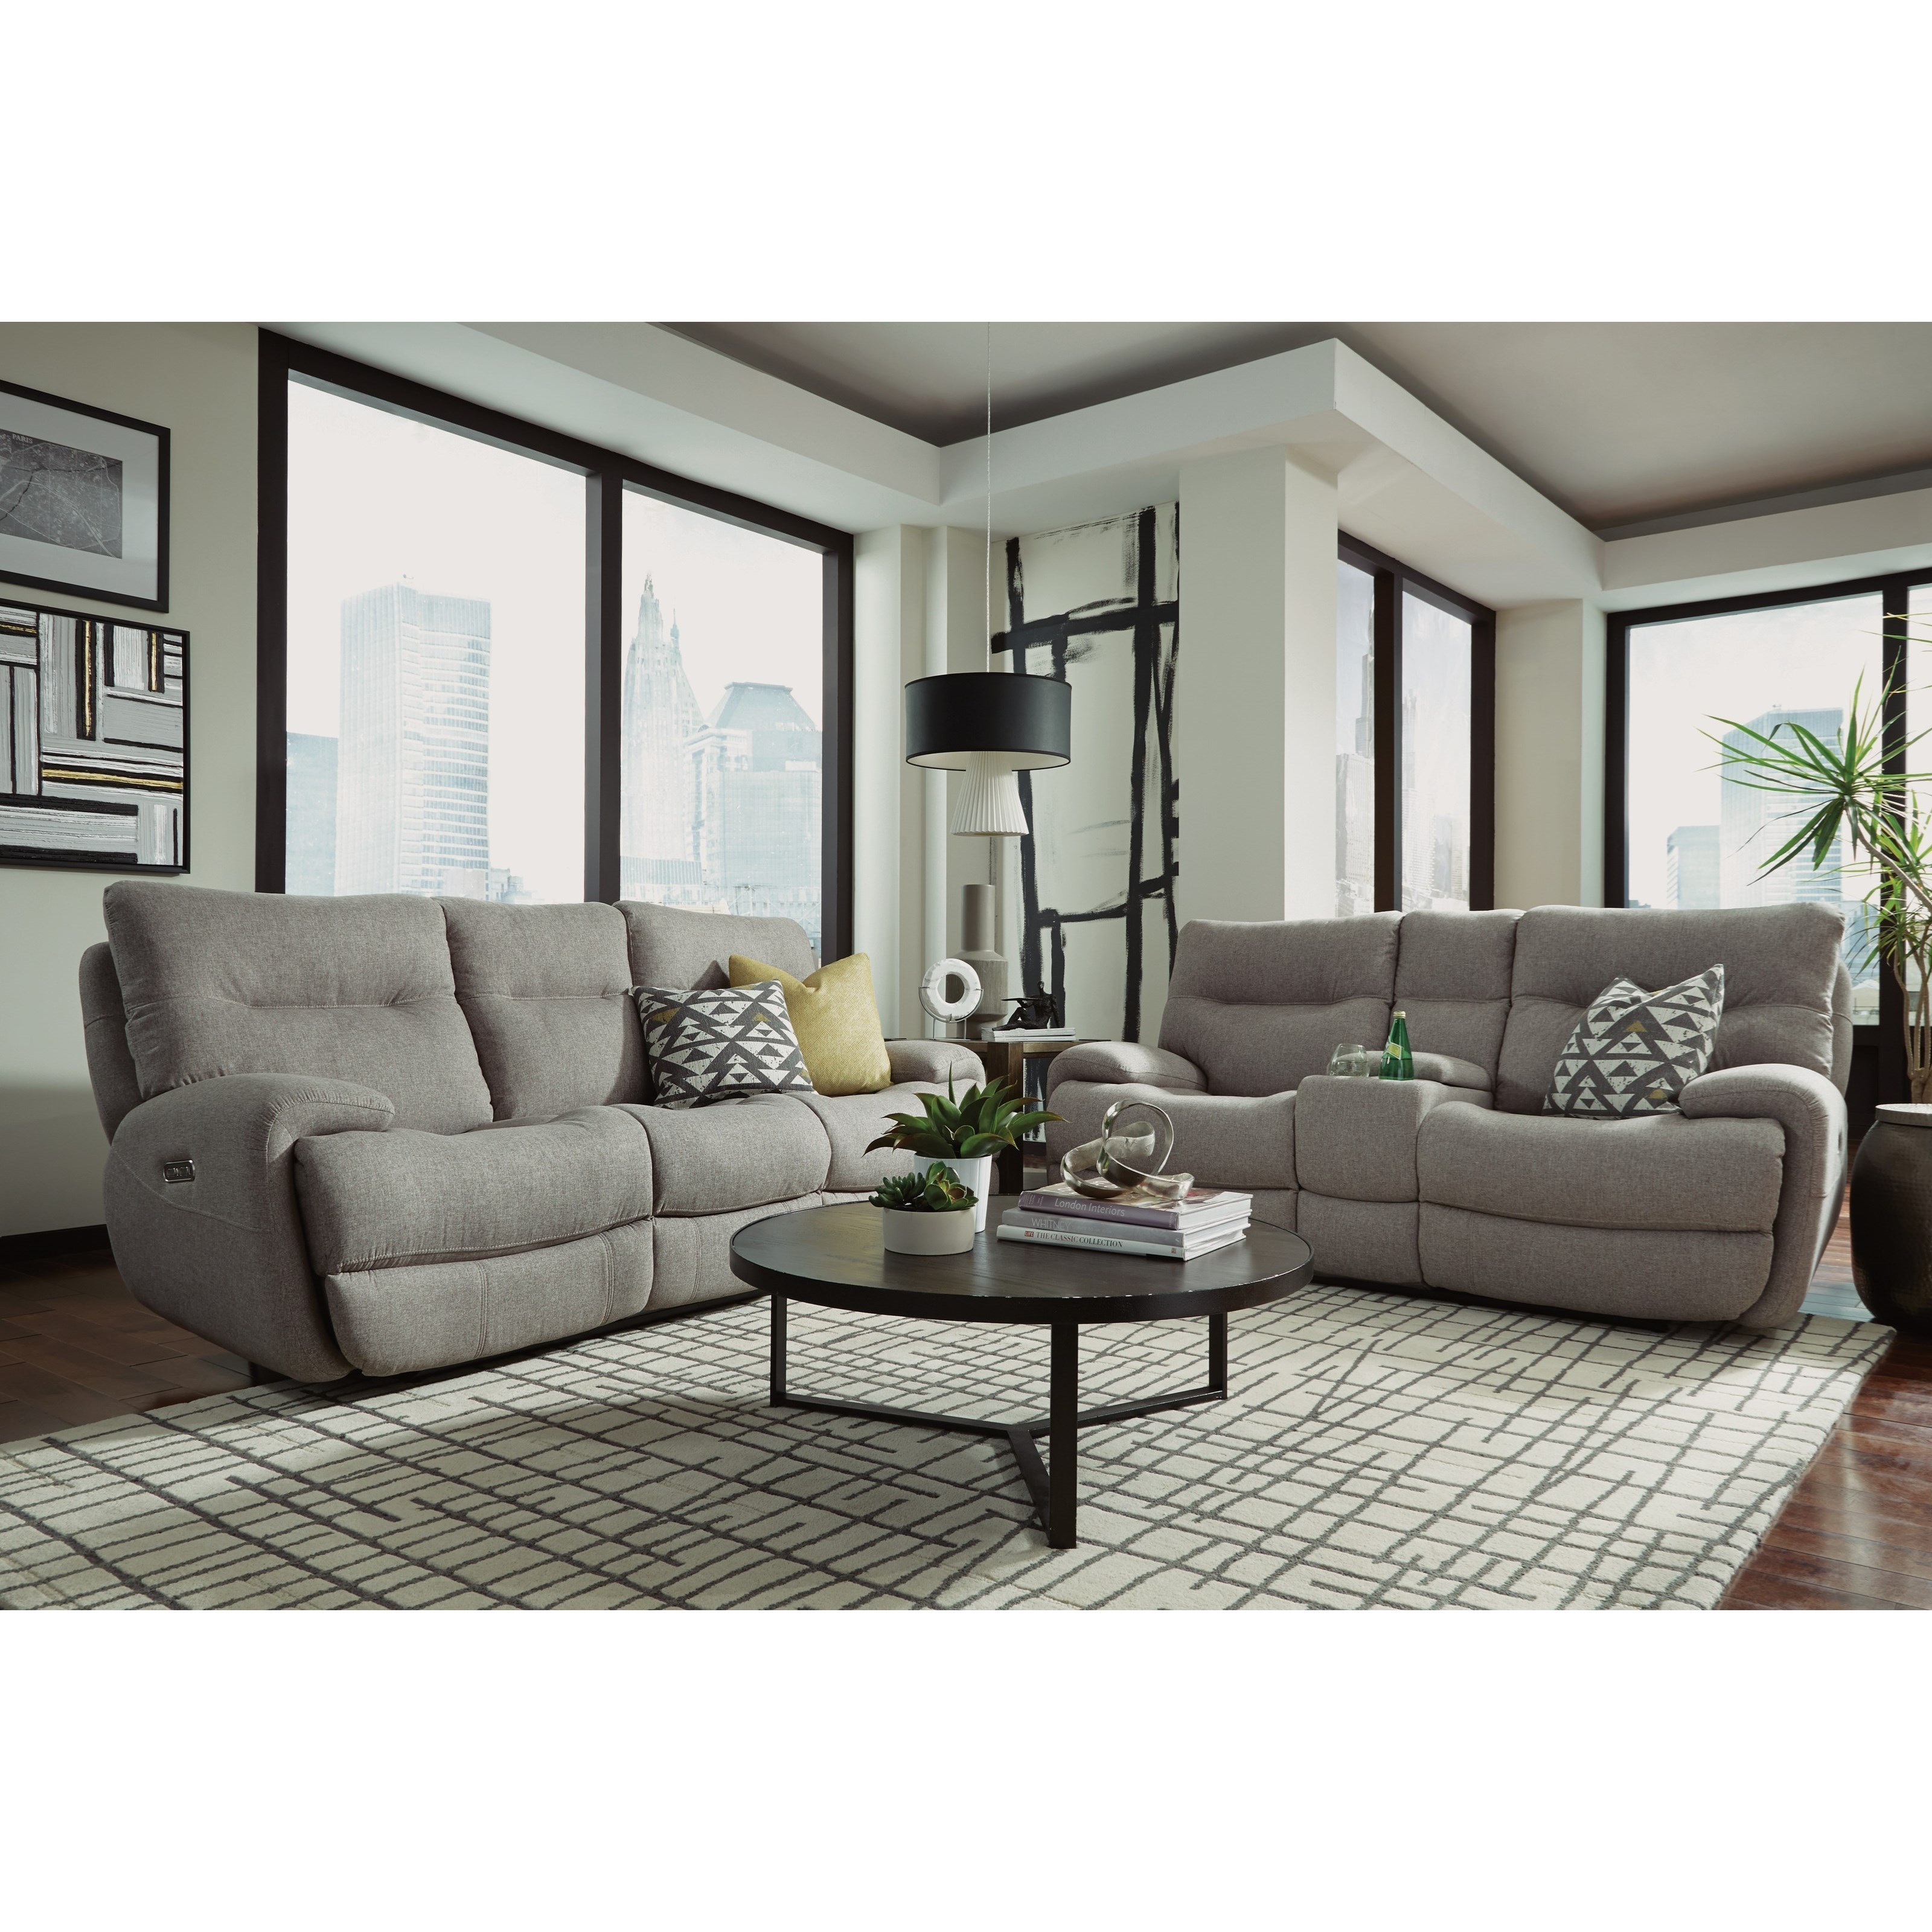 flexsteel double reclining sofa reviews covers for cats delivery estimates northeast factory direct cleveland eastlake latitudes evianpower with power headrest